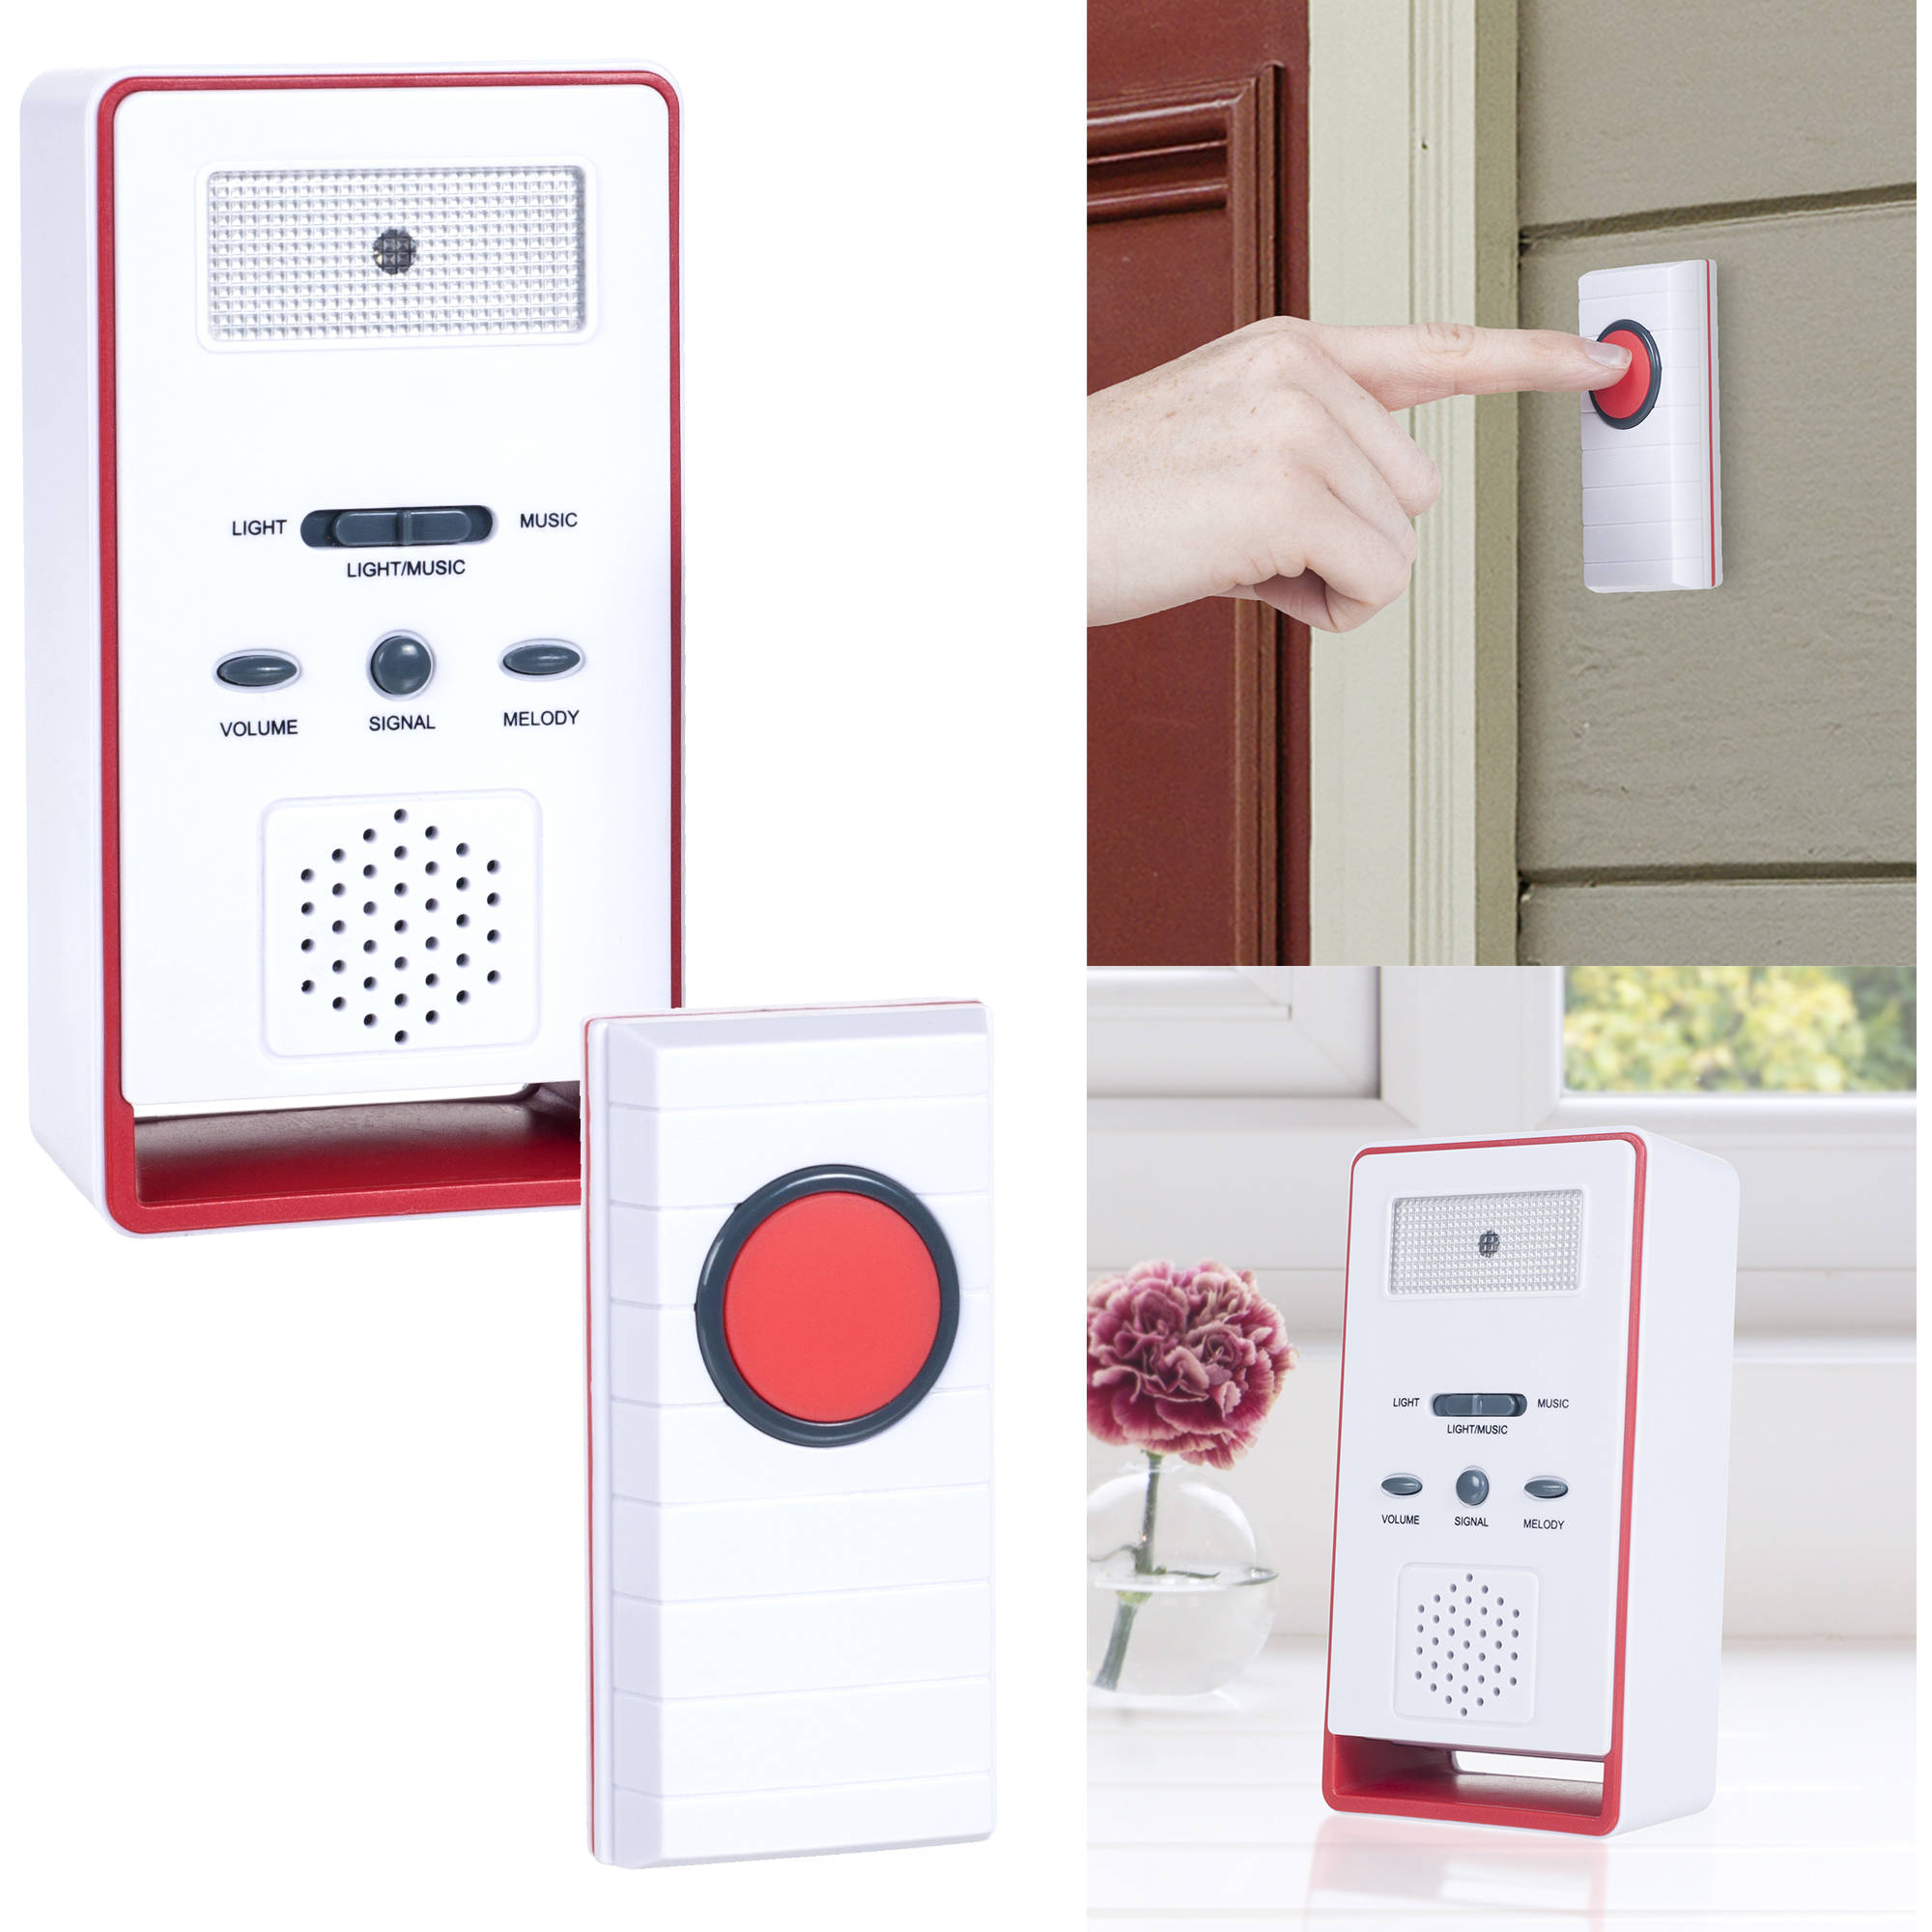 . Stalwart Wireless Remote Doorbell Chime and Push Button   Walmart com